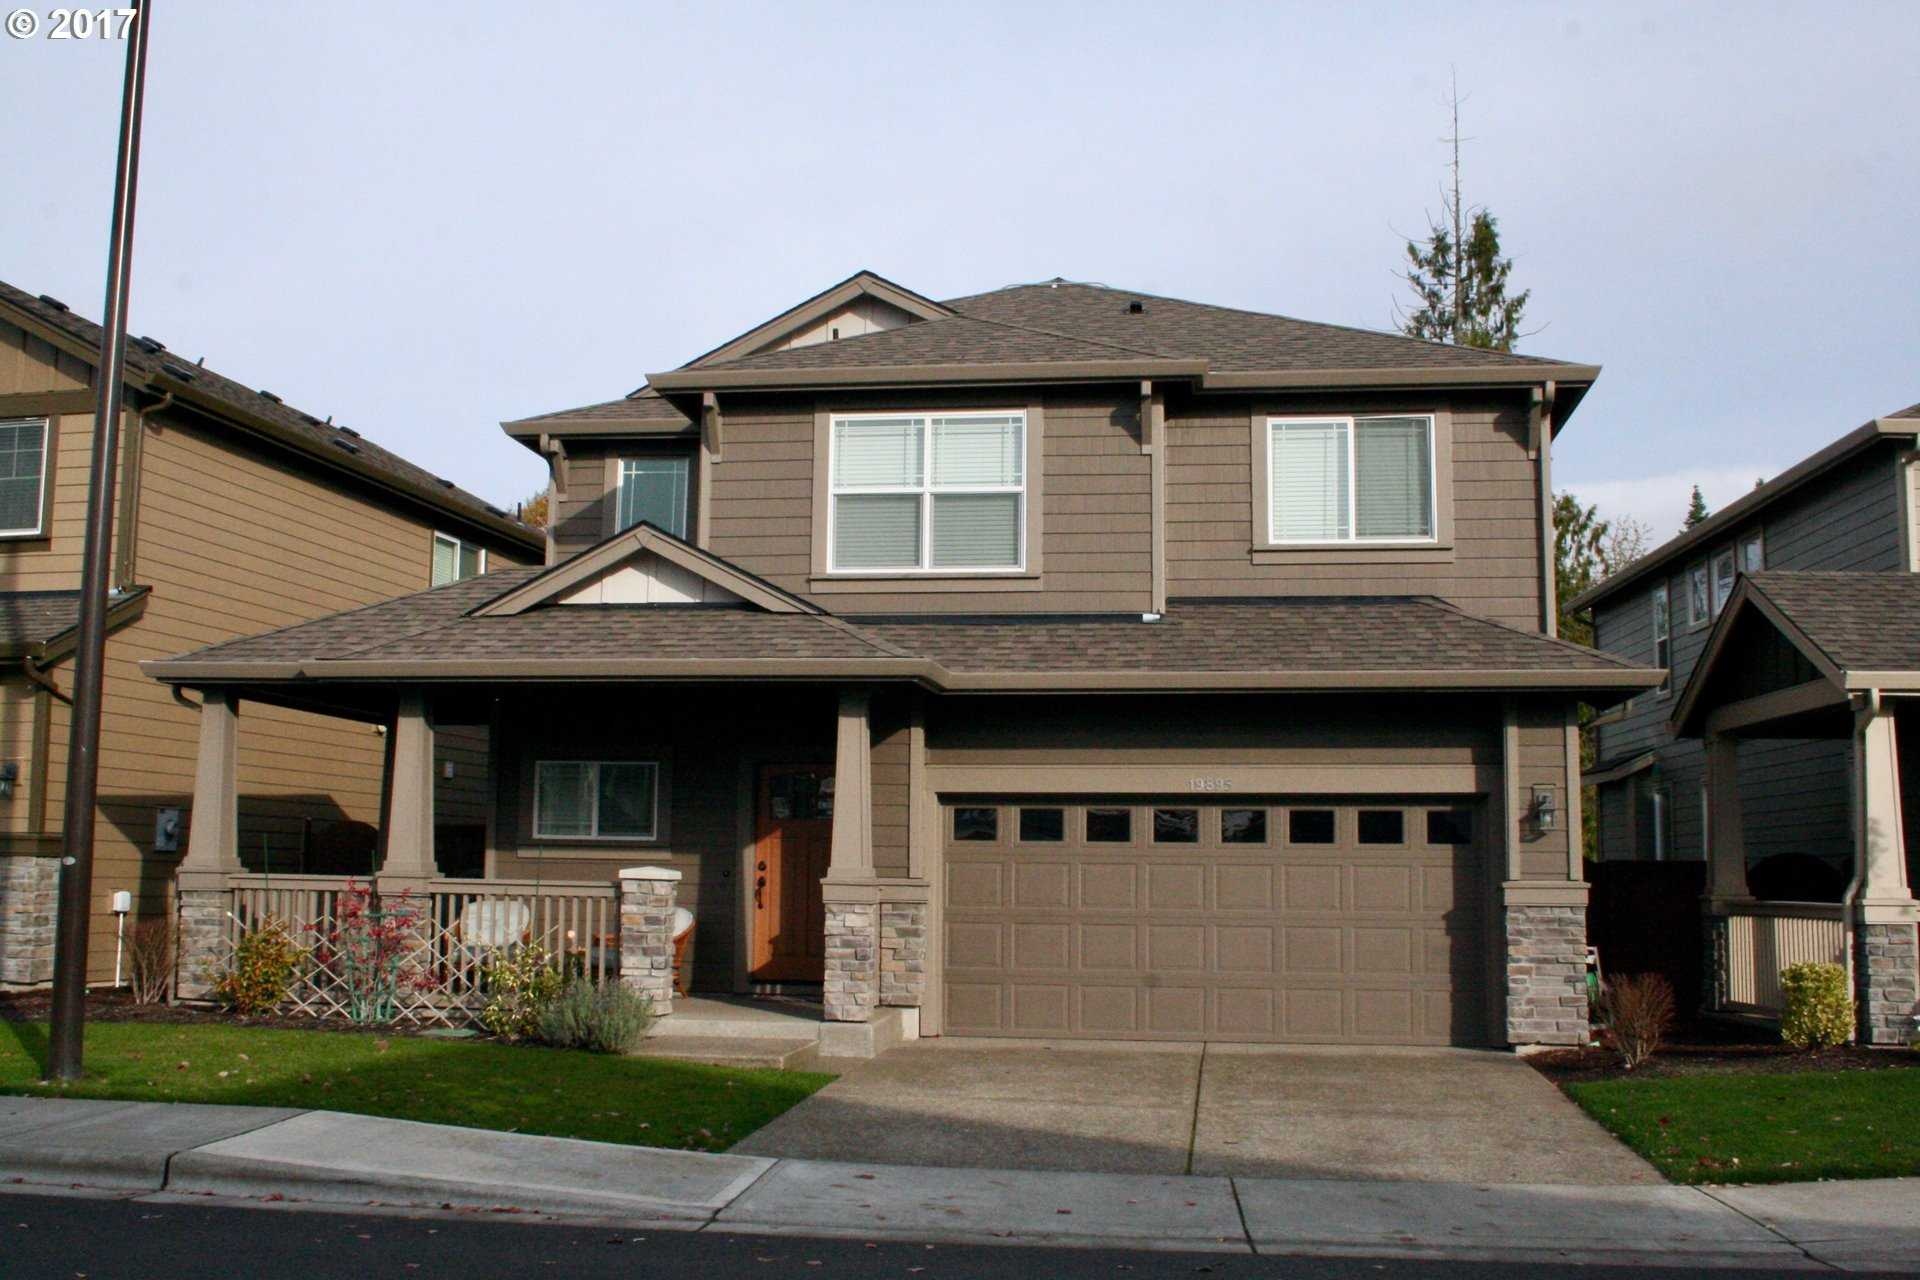 $509,000 - 4Br/3Ba -  for Sale in Beaverton